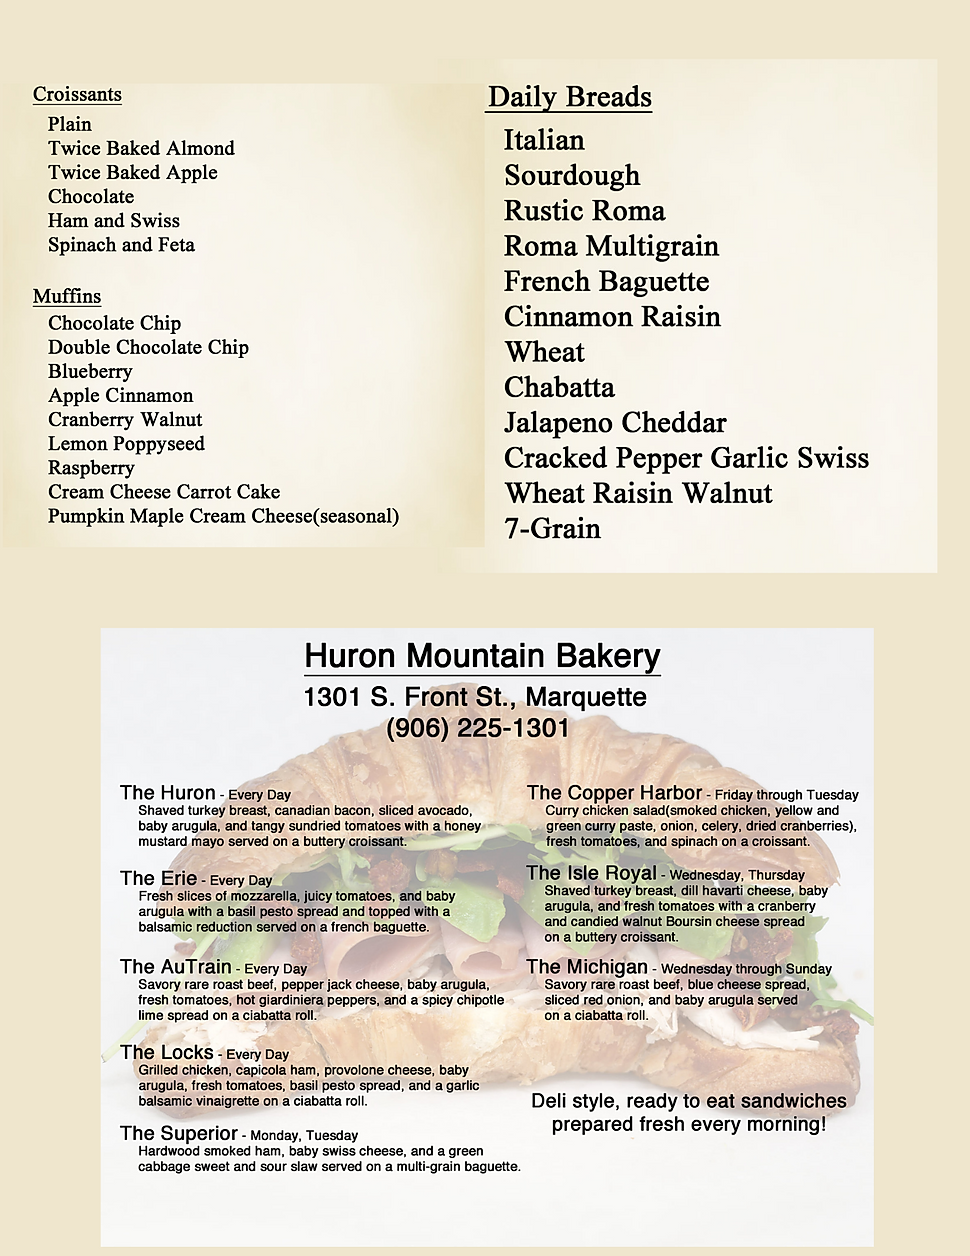 Huron Mountain Bakery cookies coffee bread restaurant menu hours location deals Marquette Now